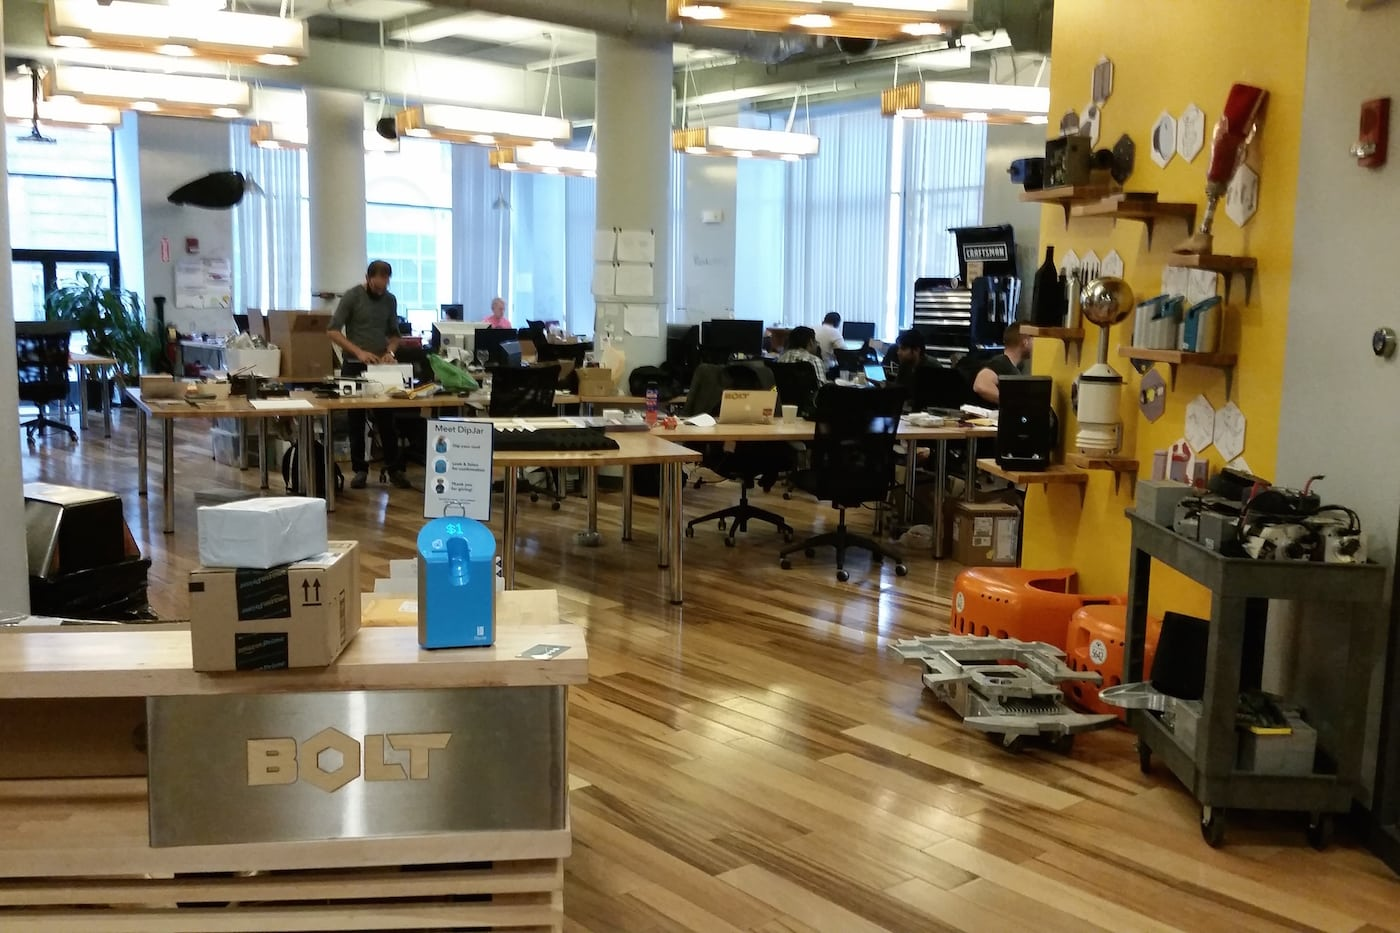 Bolt's Boston office